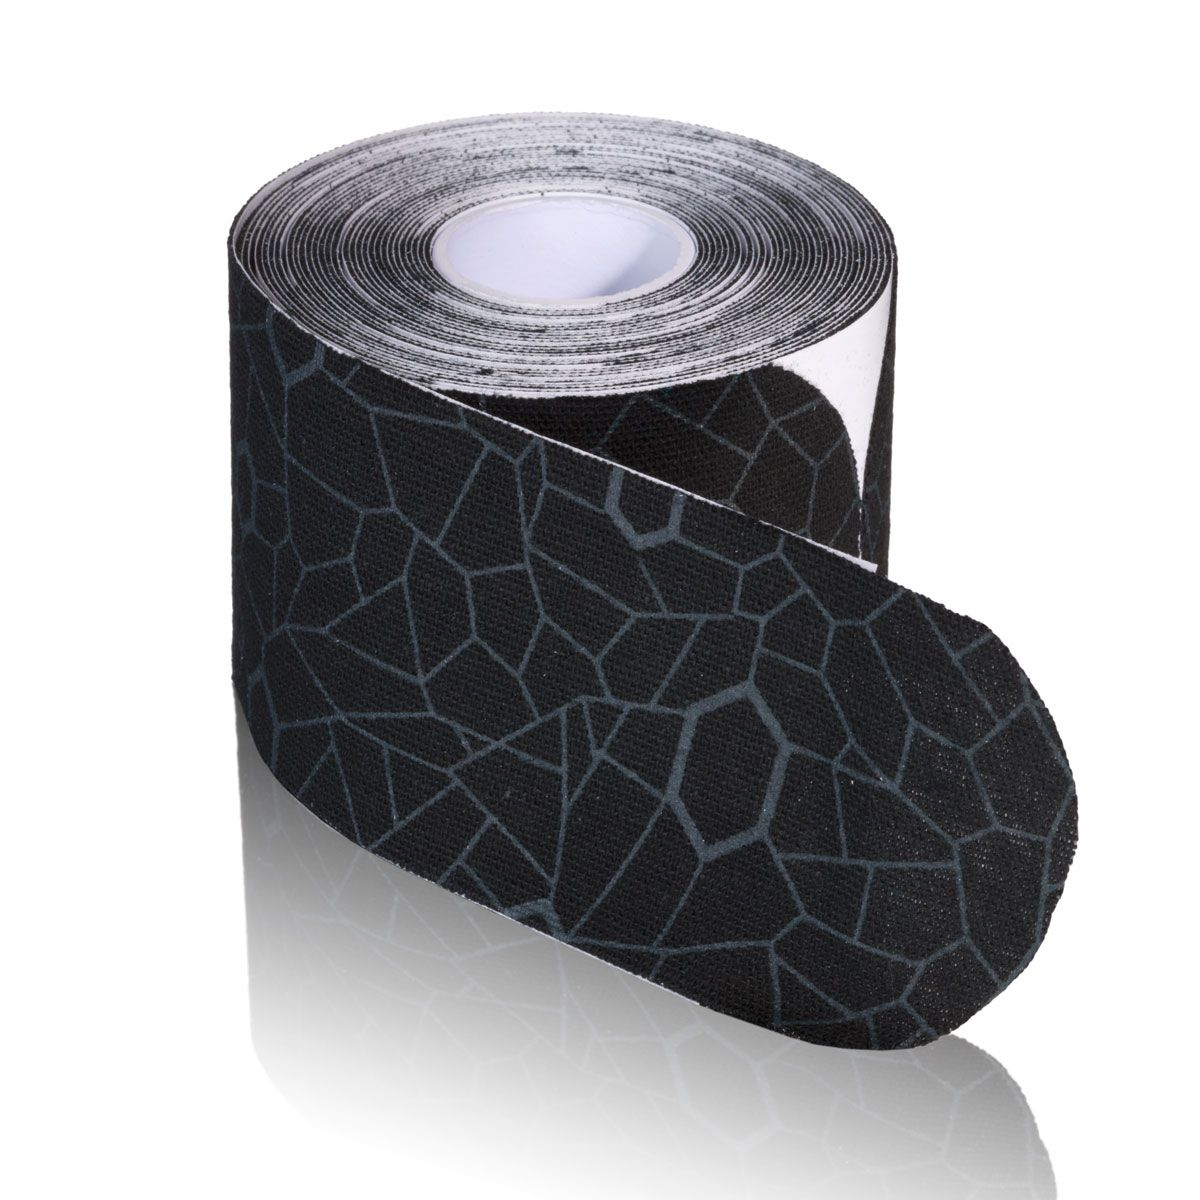 TheraBand Kinesiology Tape - (1) 2 in. x 16.4 ft. Roll - Black/Grey